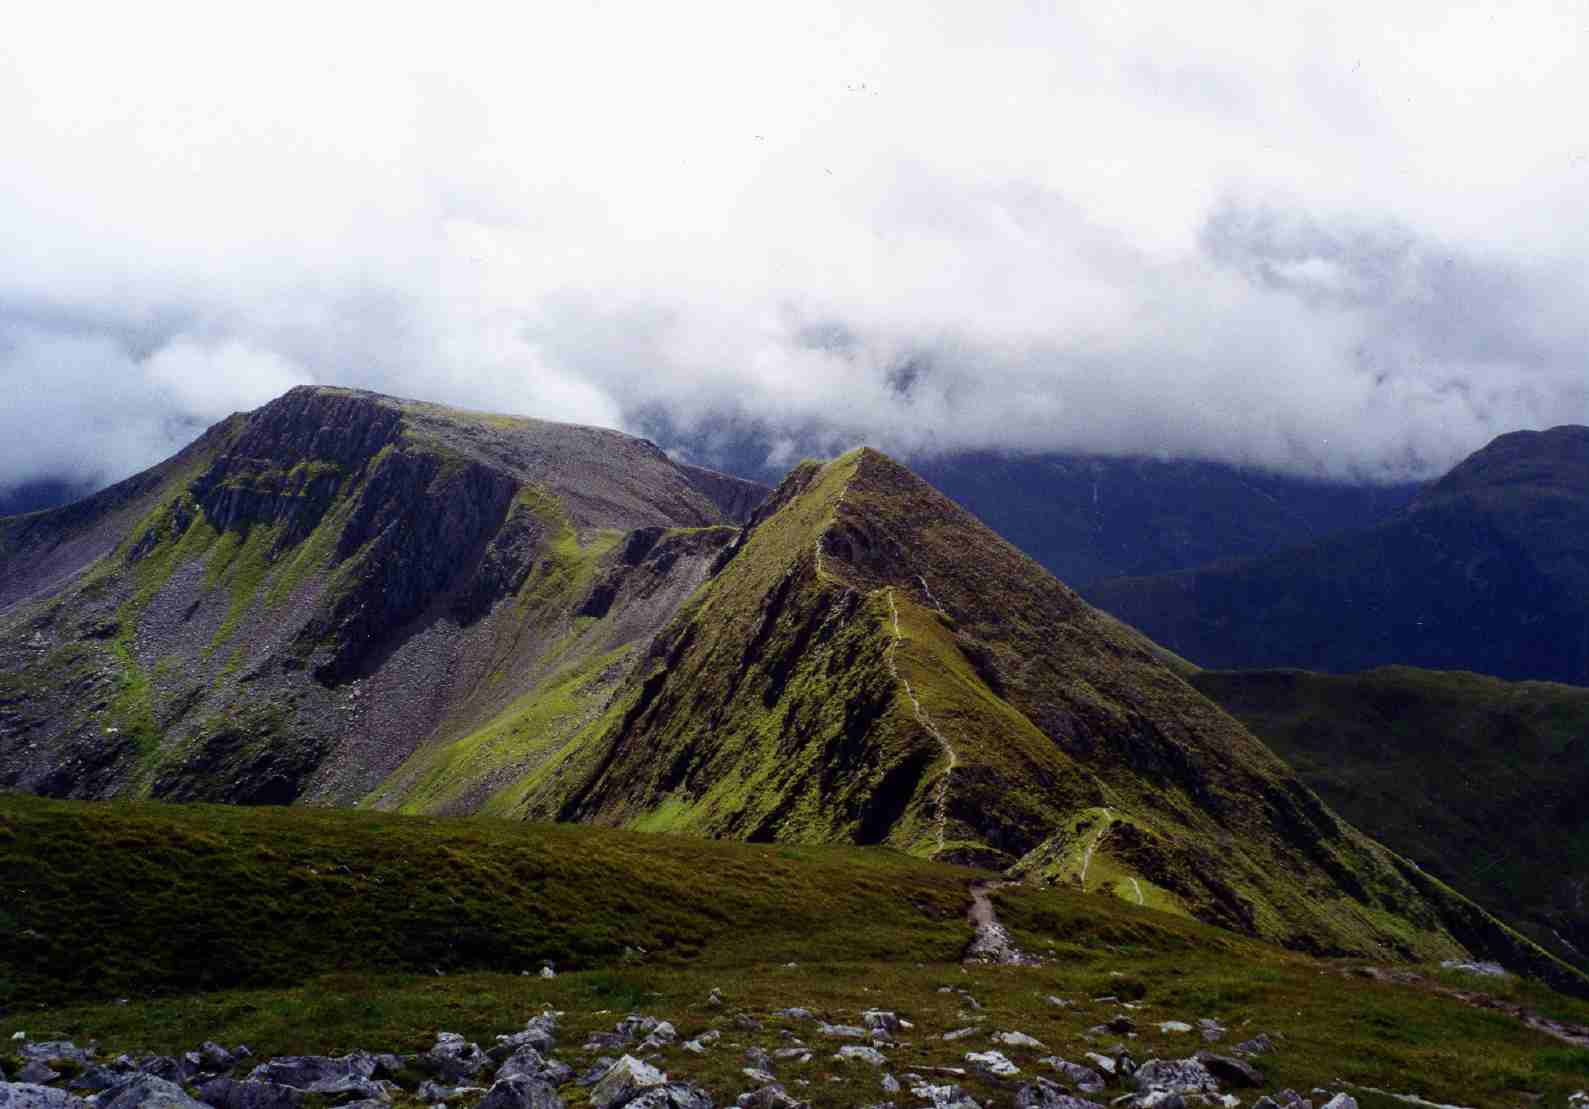 Luxury Cottages near Ben Nevis